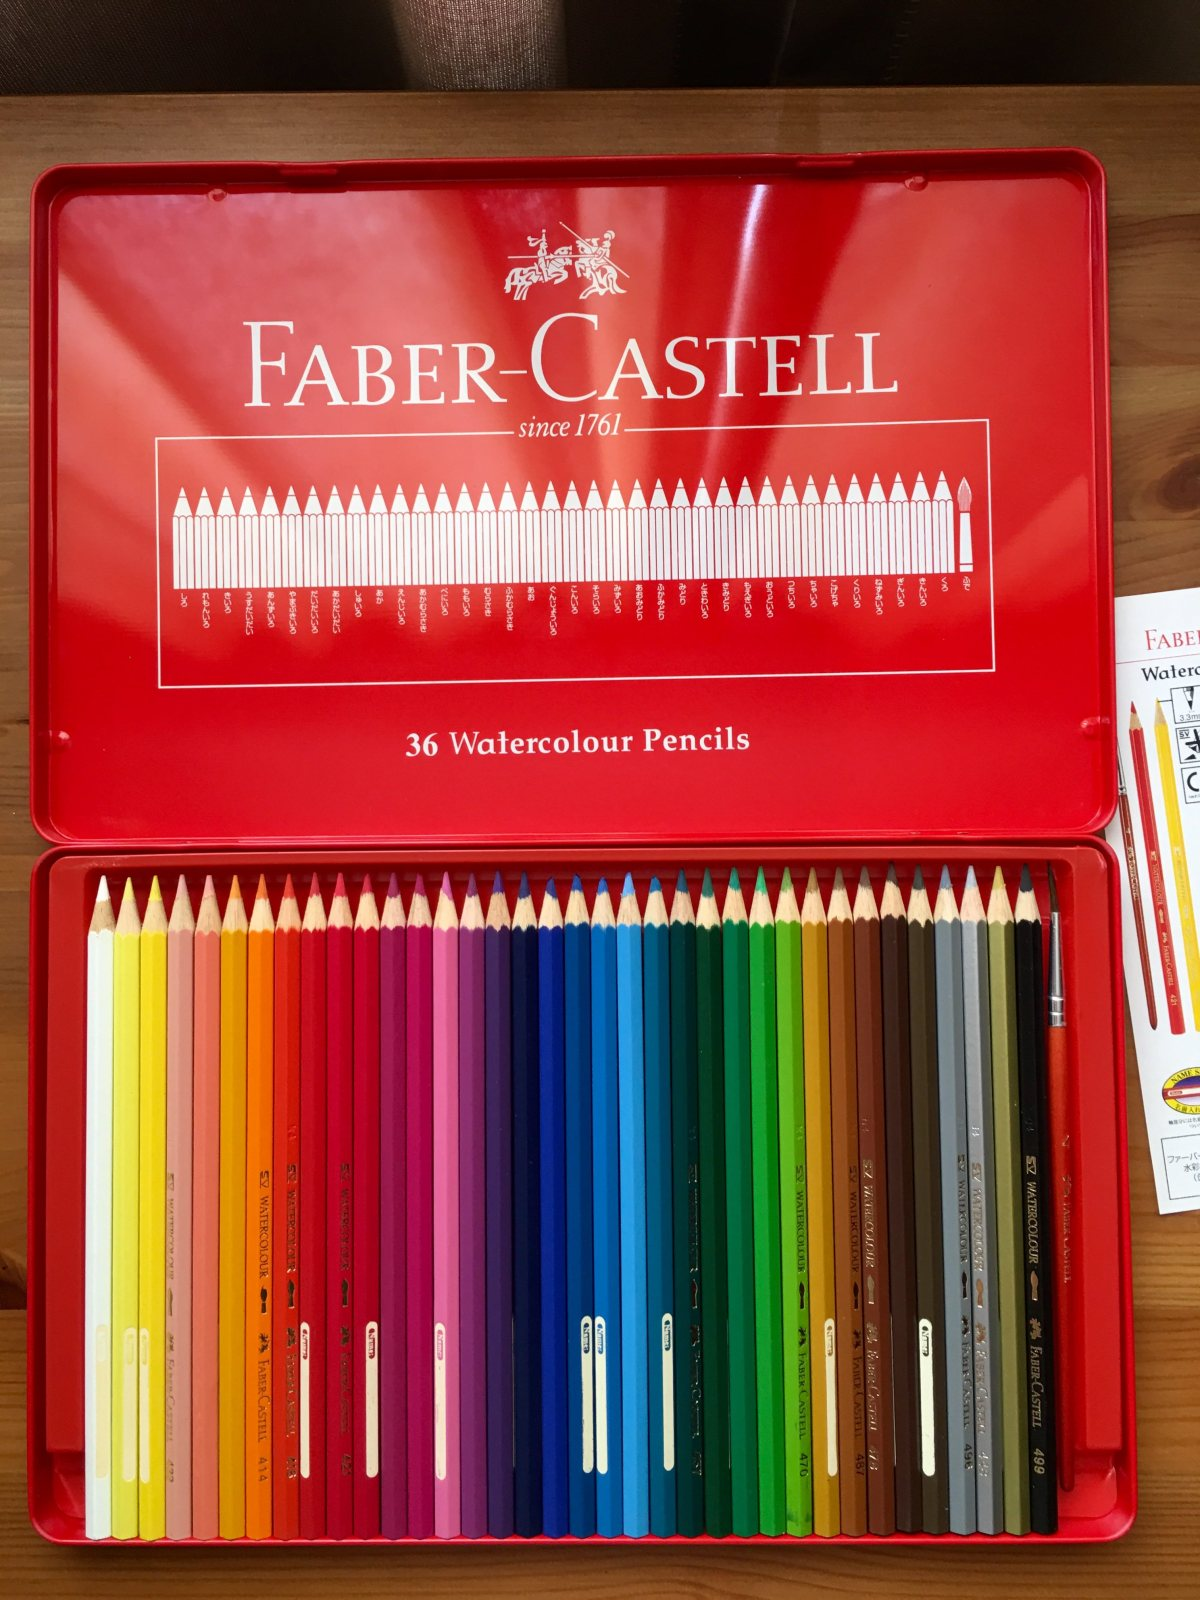 Faber-Castell watercolor pencils set